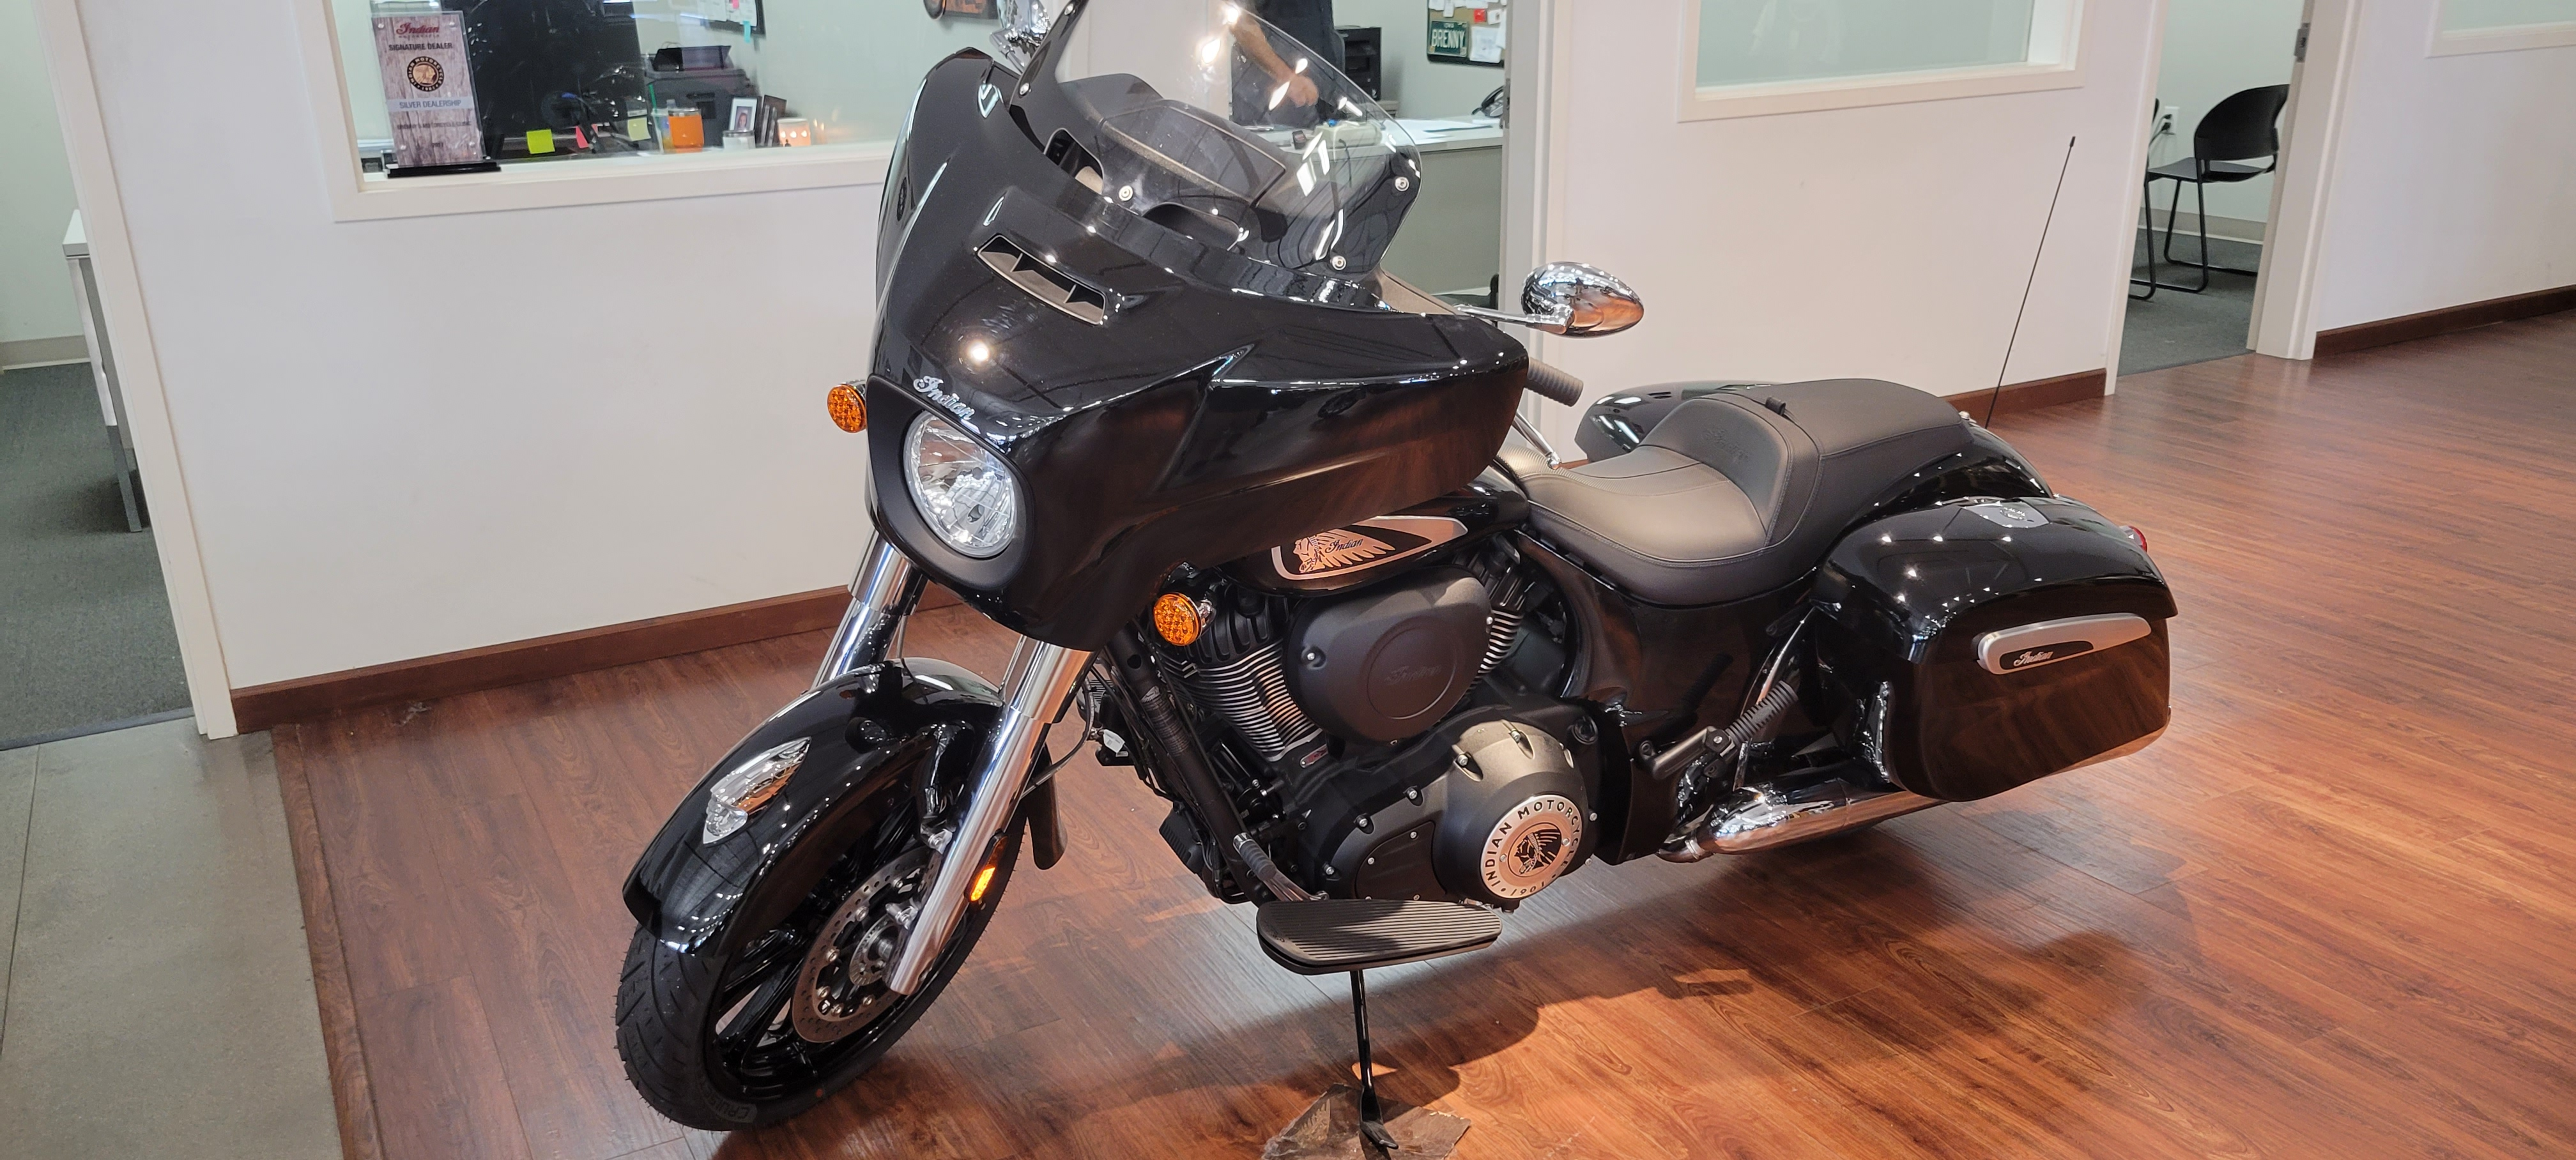 2021 Indian Motorcycle Chieftain at Brenny's Motorcycle Clinic, Bettendorf, IA 52722